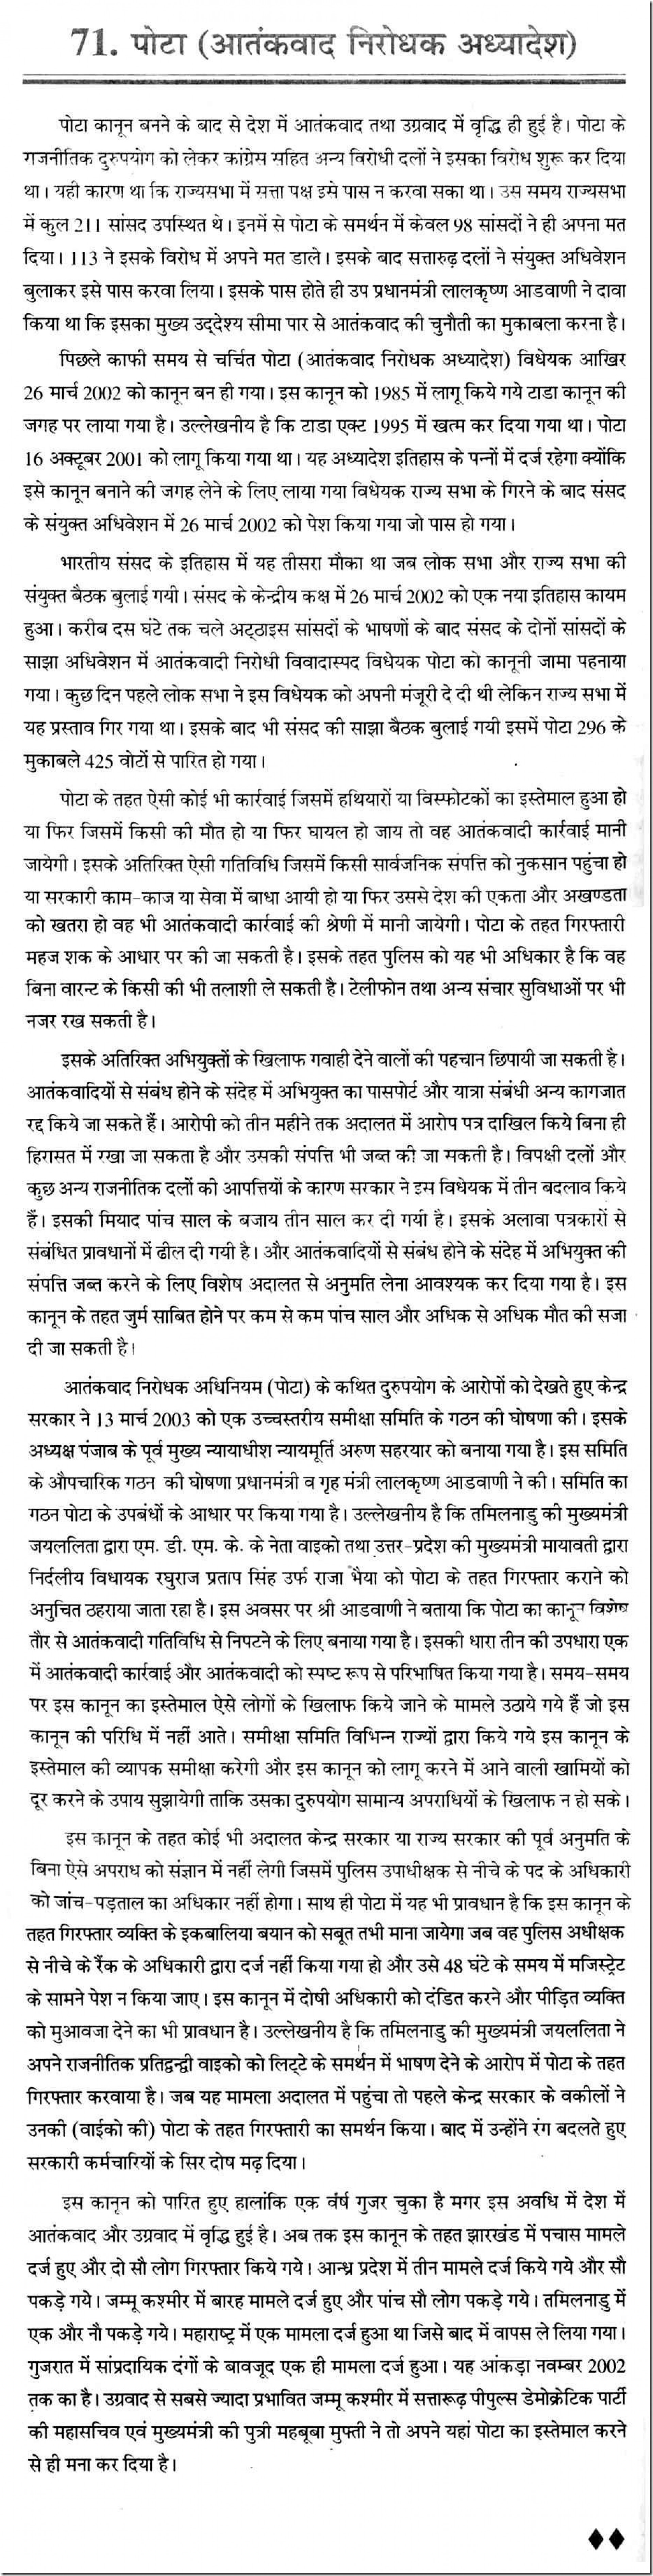 009 10071 Thumb 3 Global Terrorism Essay In Hindi Outstanding 1920